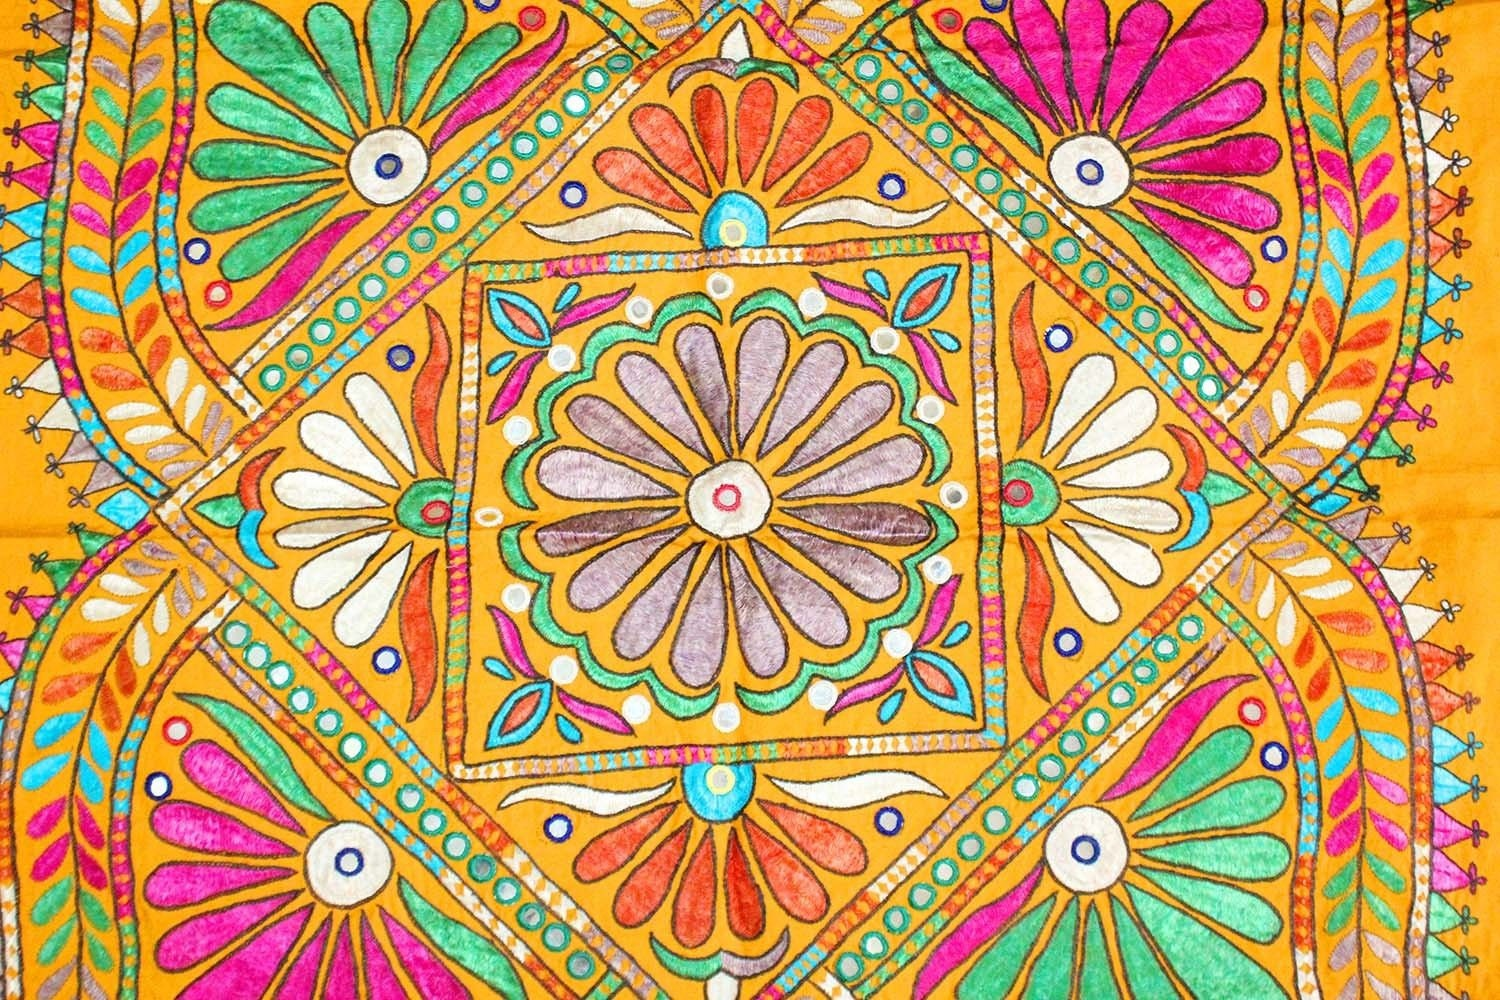 Awesome Psychedelic Wall Art Image Collection - The Wall Art ...